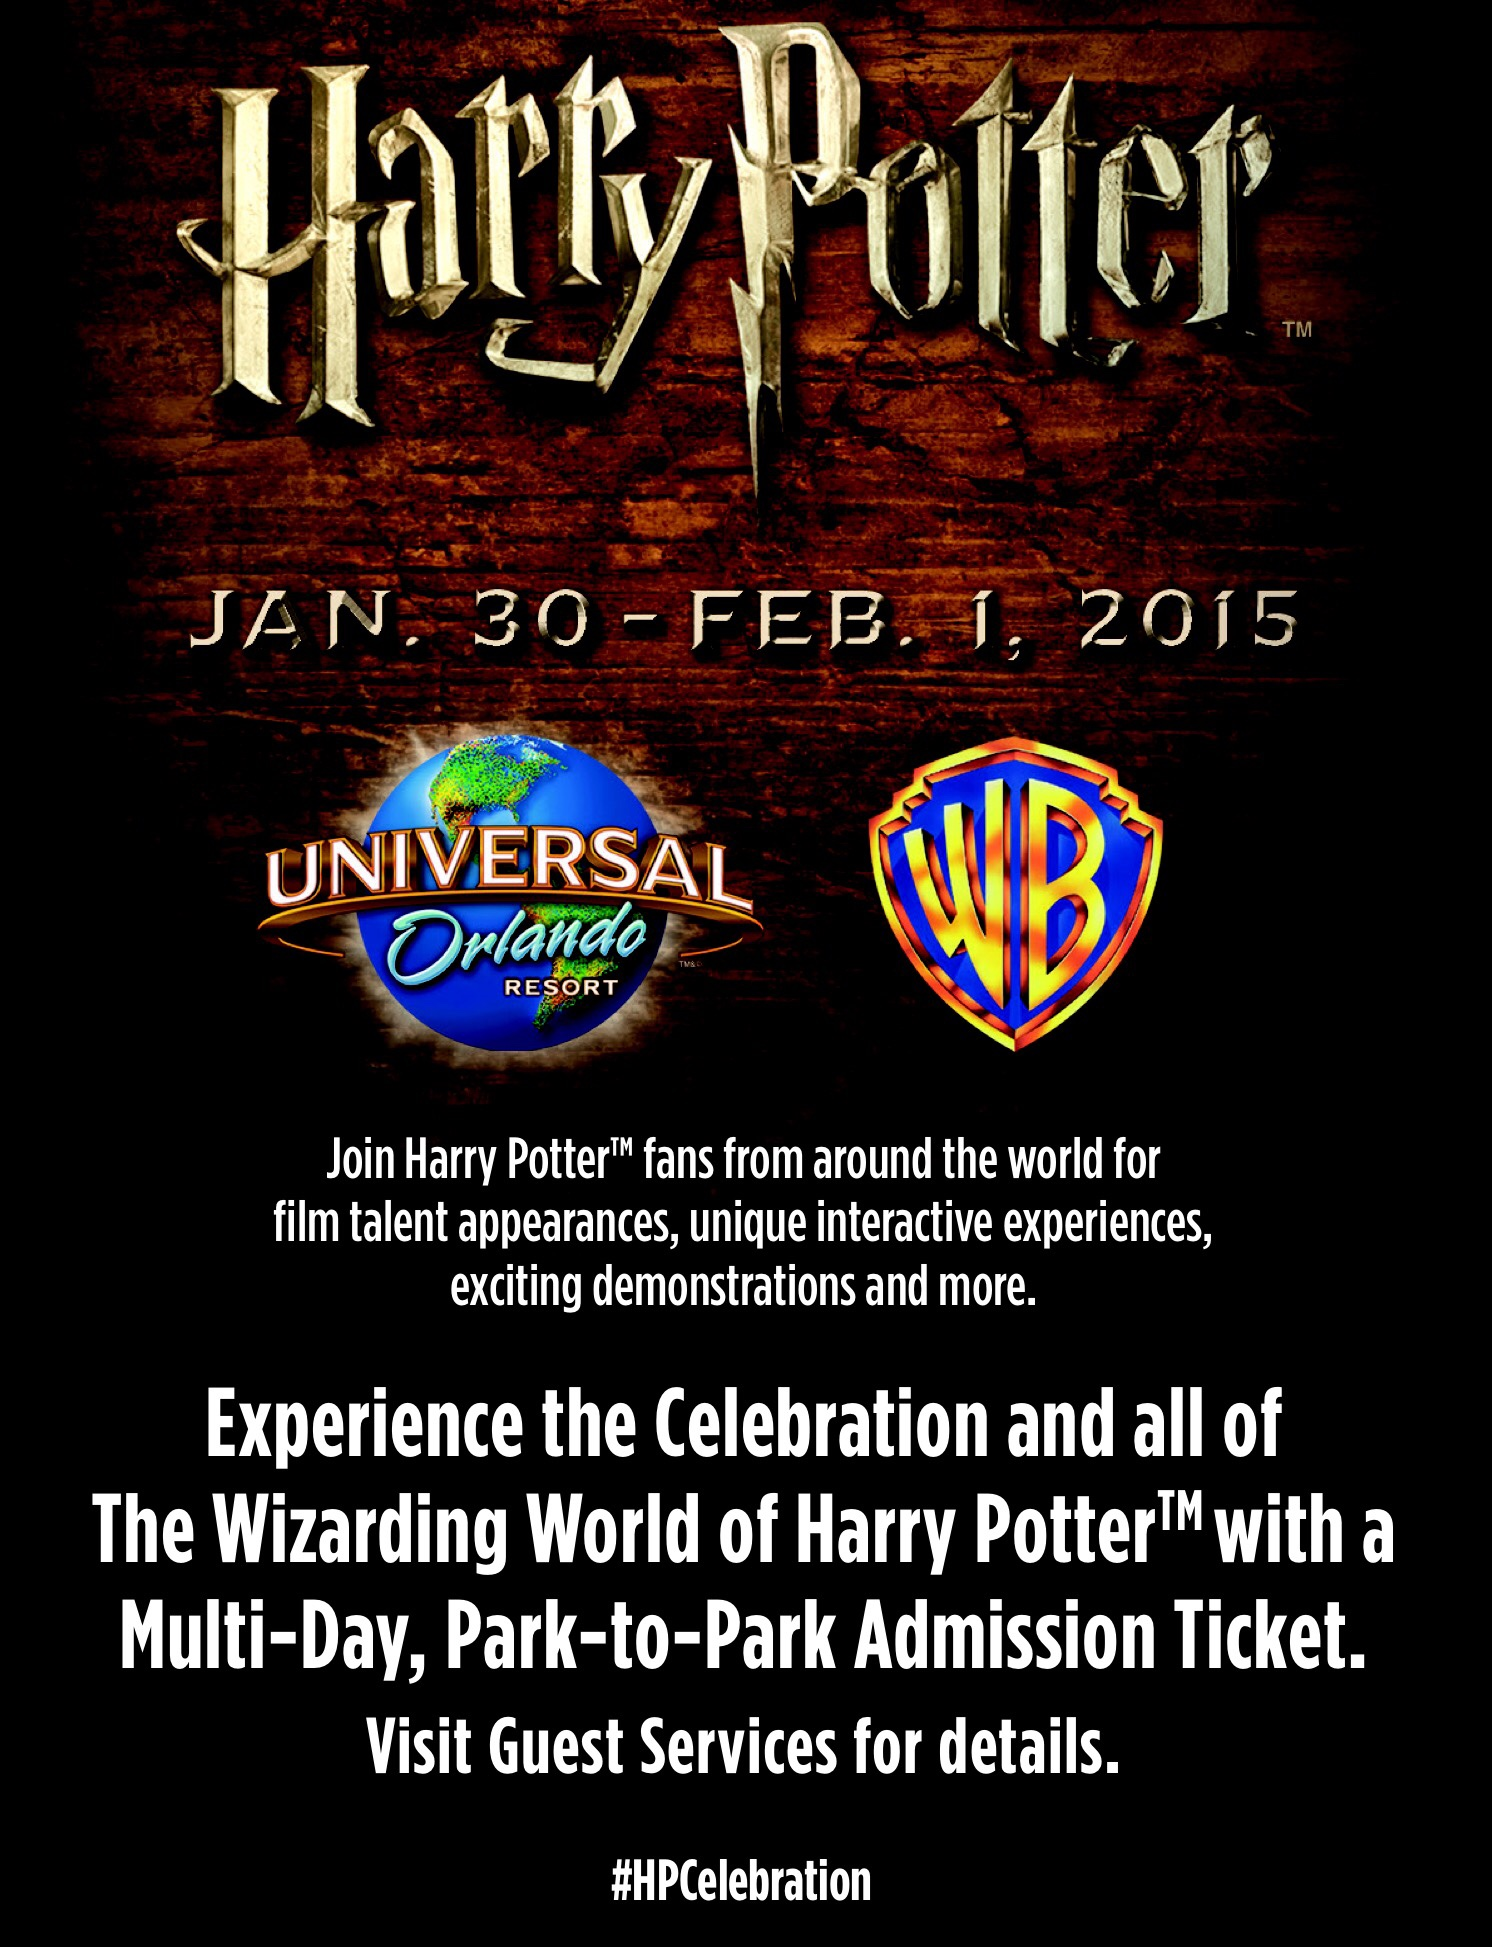 Celebration of Harry Potter schedule and autograph information